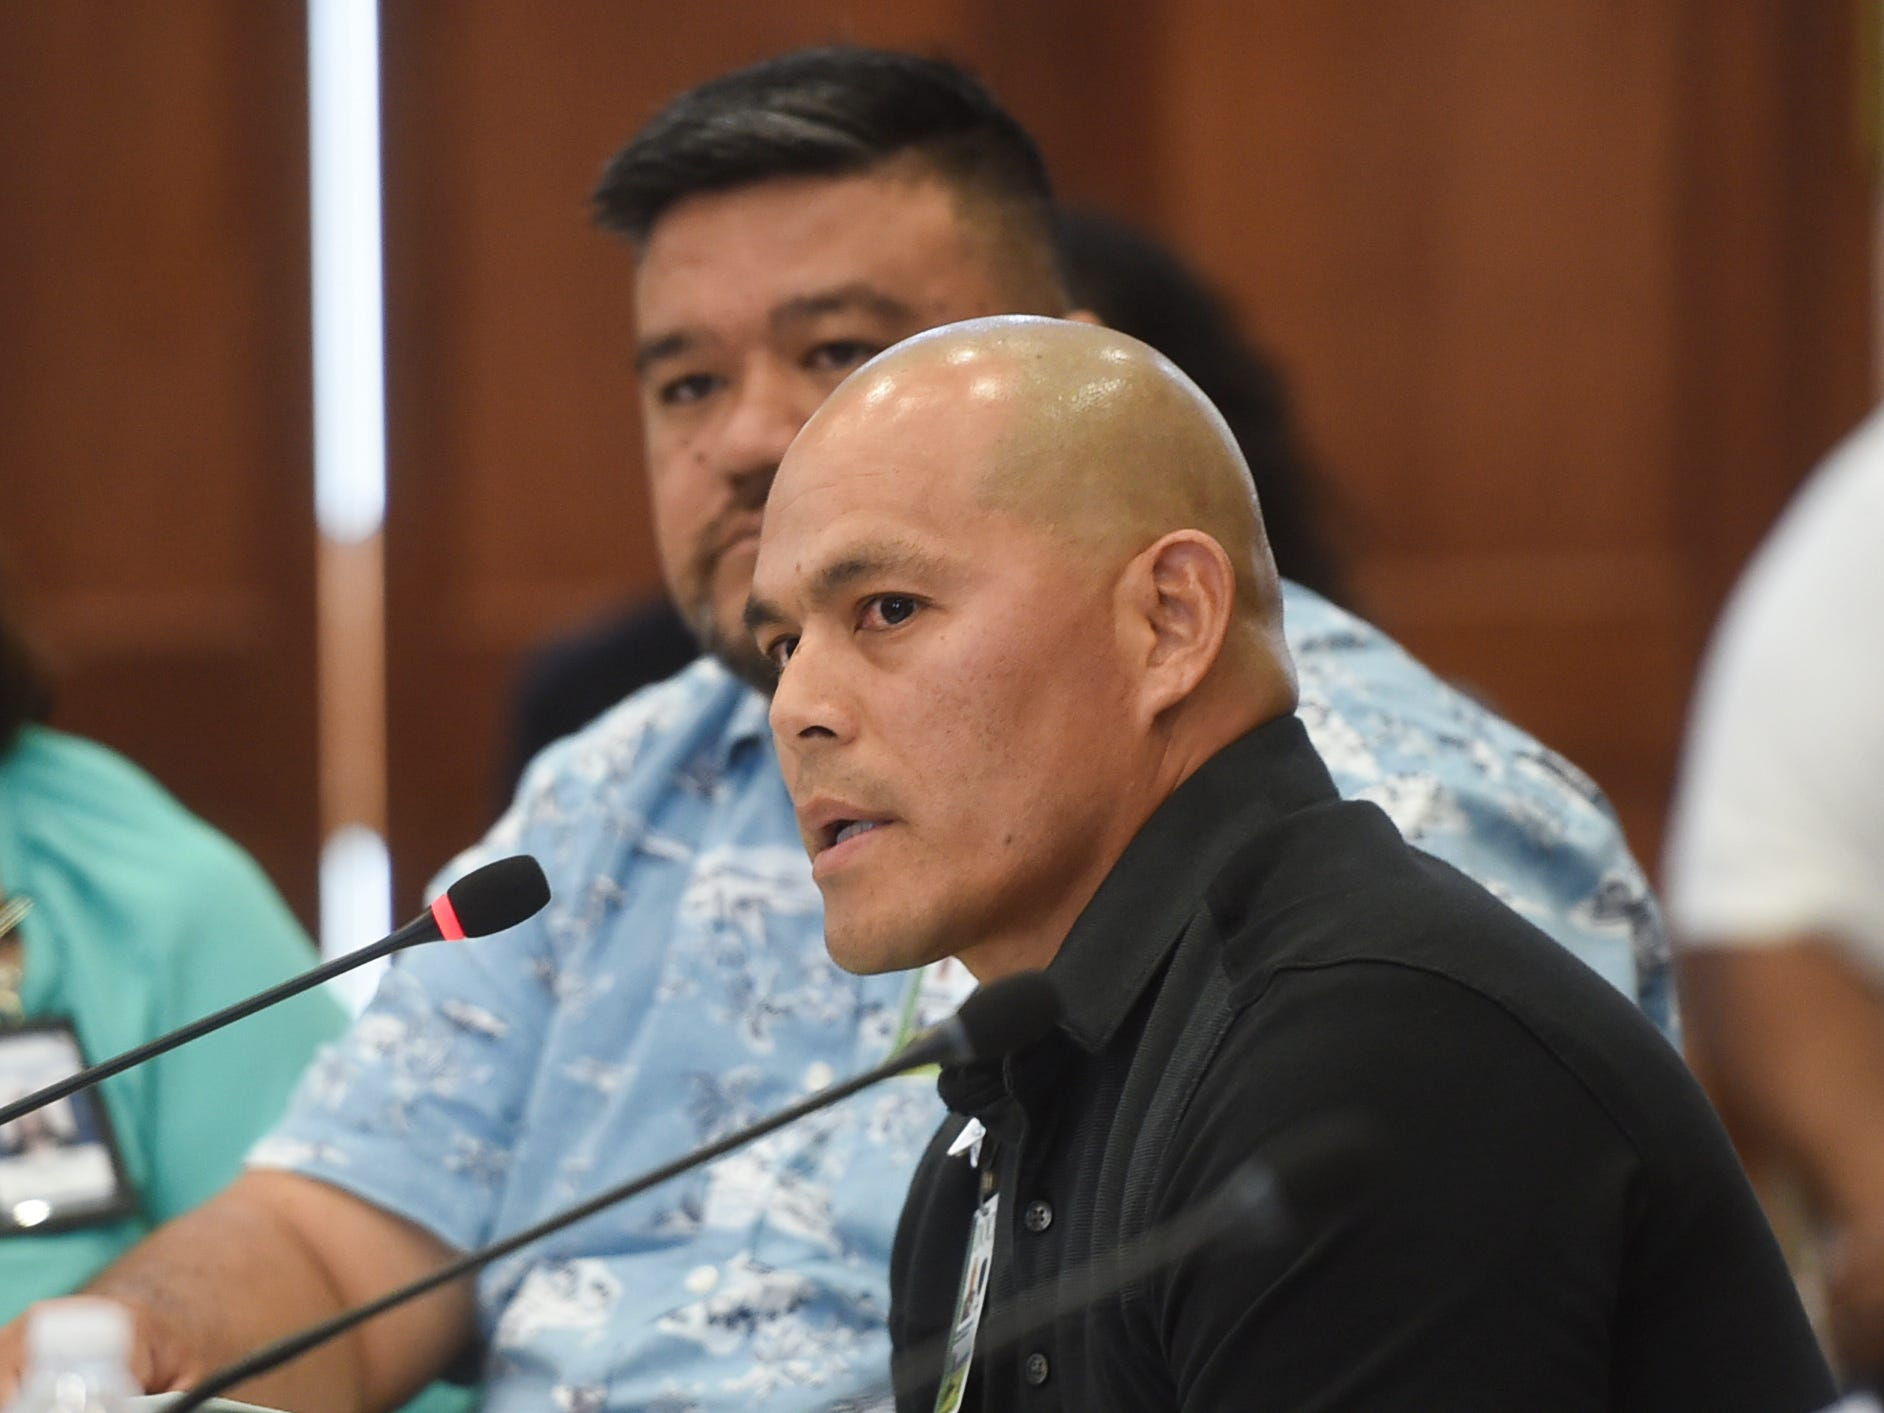 Ron Santos, a Guam Department of Corrections parole officer, answers questions during a roundtable discussion on sentencing laws, rehabilitation, and parole at the Guam Congress Building in Hagåtña on May 6, 2019.